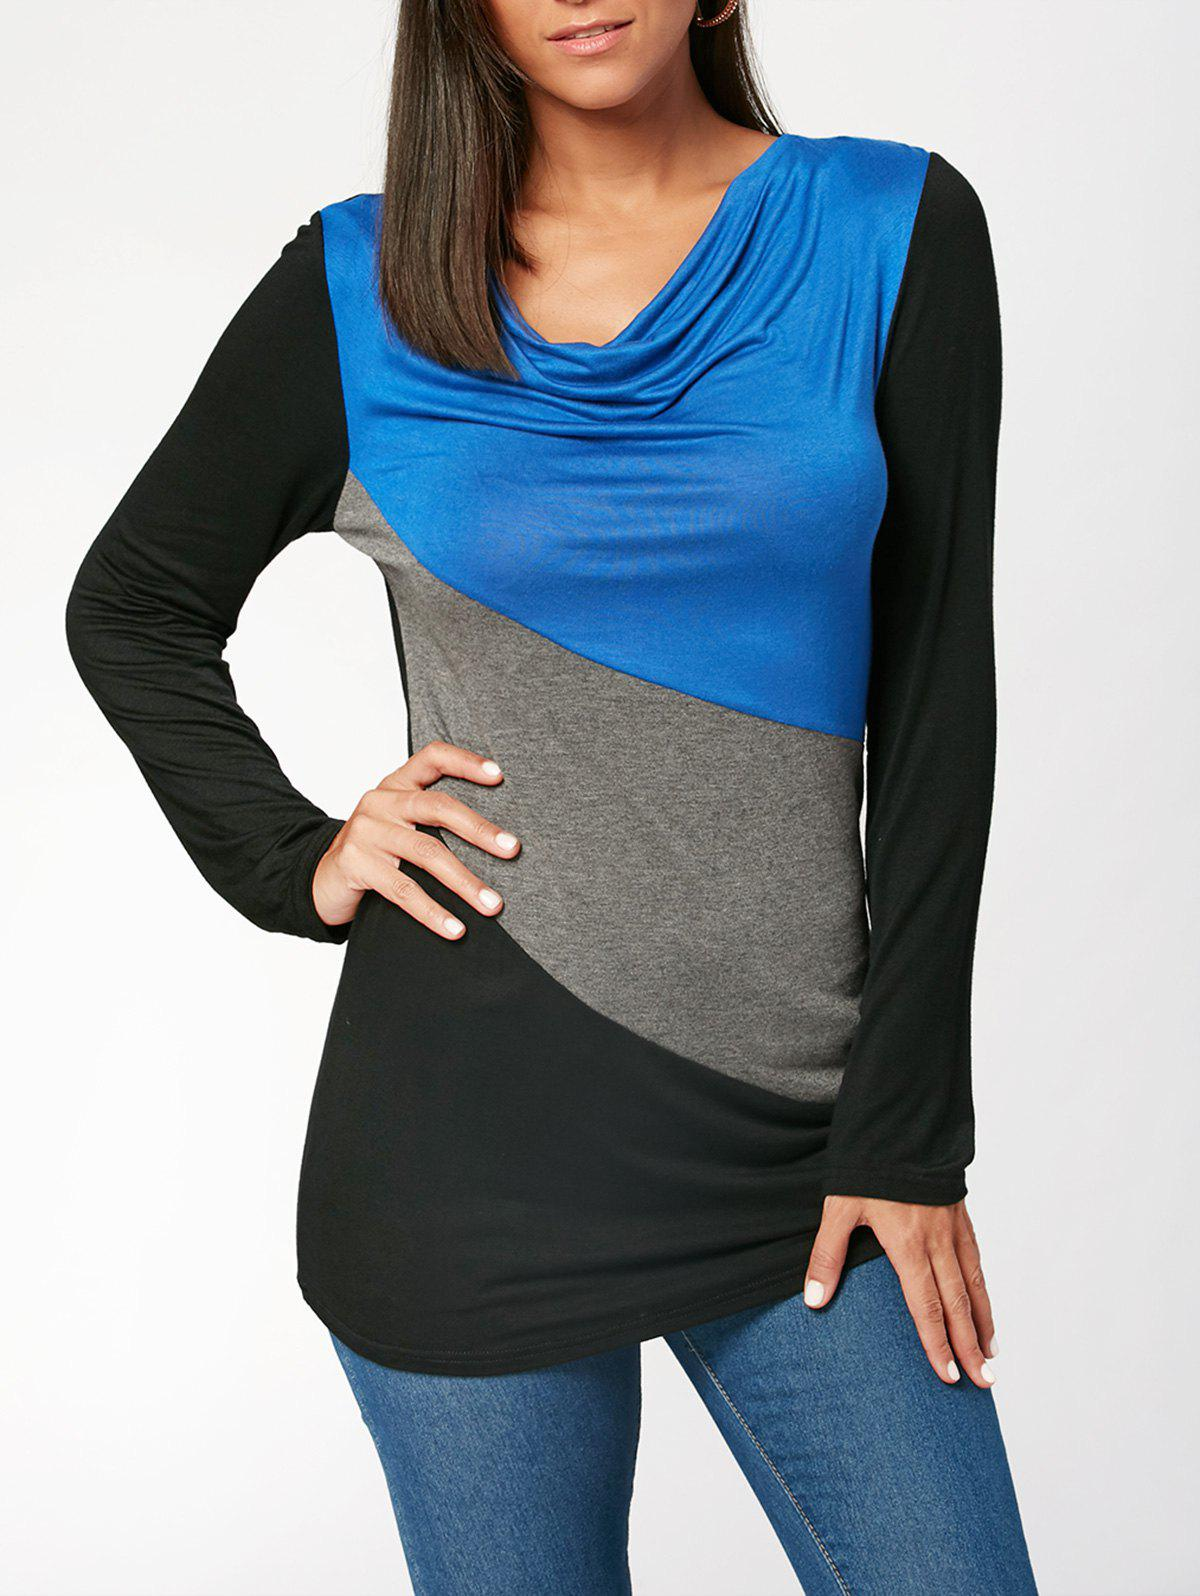 Color Block Long Sleeve T-shirtWOMEN<br><br>Size: XL; Color: COLORMIX; Material: Polyester,Spandex; Shirt Length: Regular; Sleeve Length: Full; Collar: Cowl Neck; Style: Casual; Embellishment: Pearls; Pattern Type: Others; Season: Fall,Spring; Elasticity: Elastic; Weight: 0.2700kg; Package Contents: 1 x T-shirt;